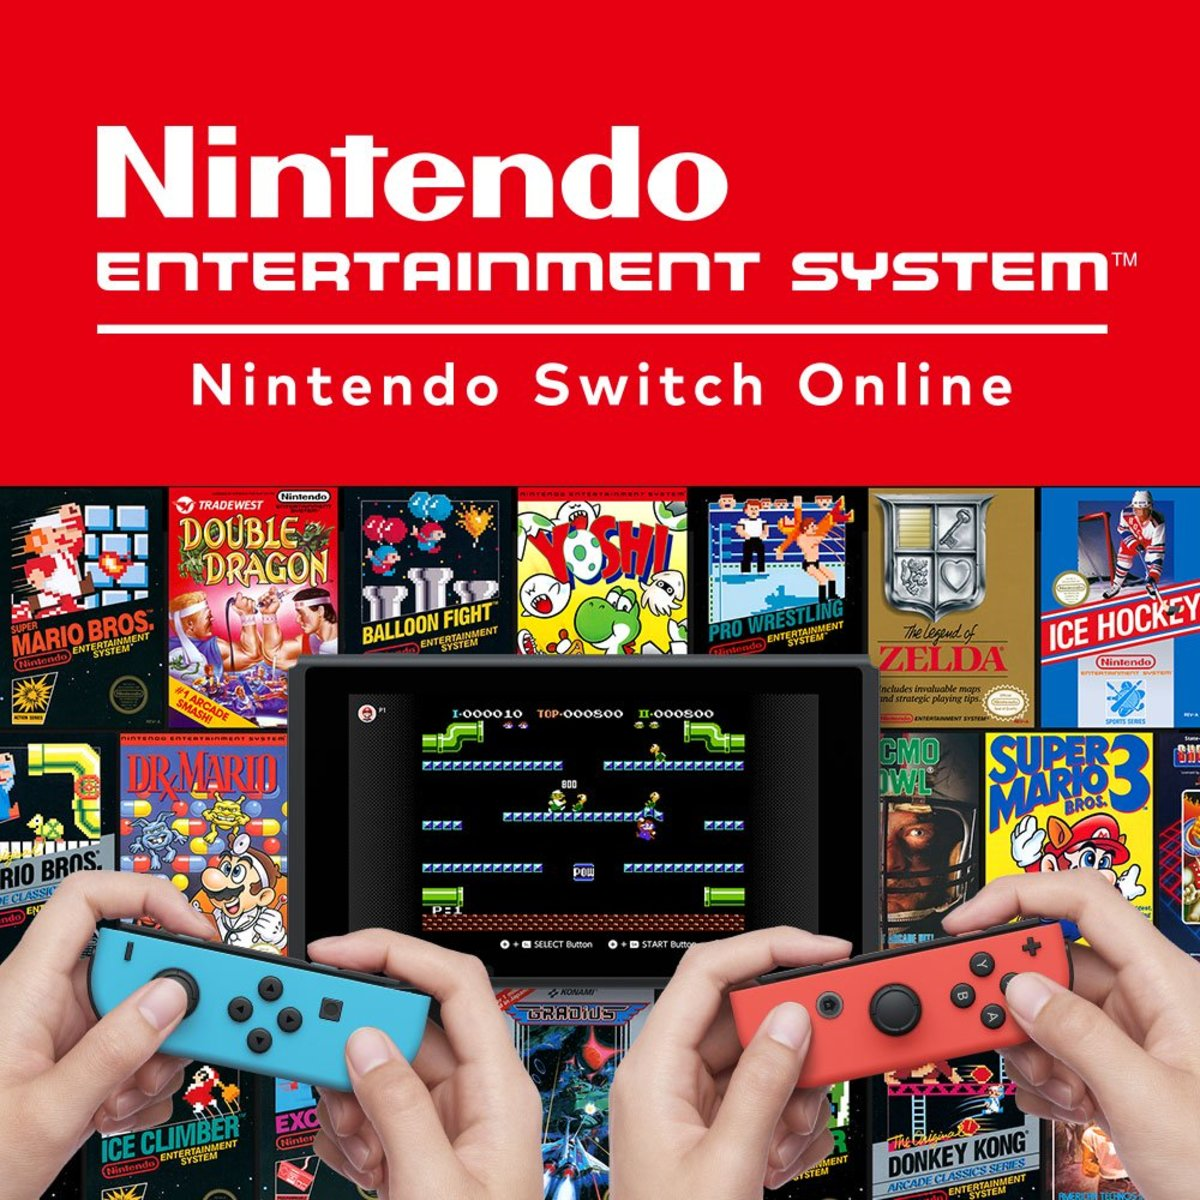 Promotional image for Nintendo Online's NES Emulator